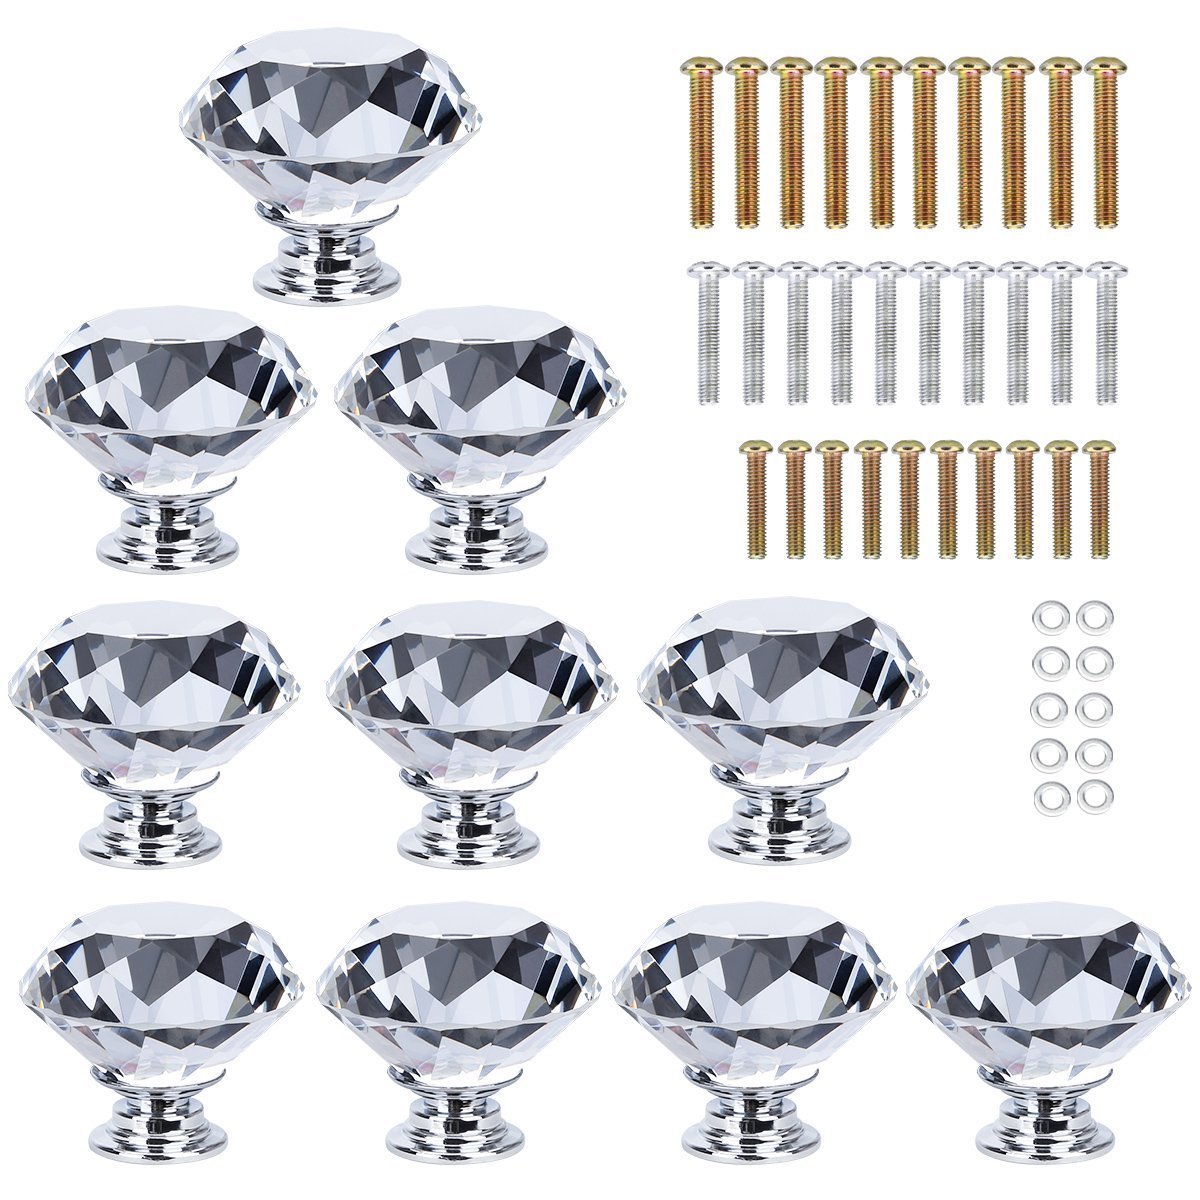 MELODIE DIRECT 10PCS 40MM Diamond Crystal Glass Cabinet Knobs Cupboard Drawer Pull Handle,3 Size Screws by MELODIE DIRECT (Image #1)